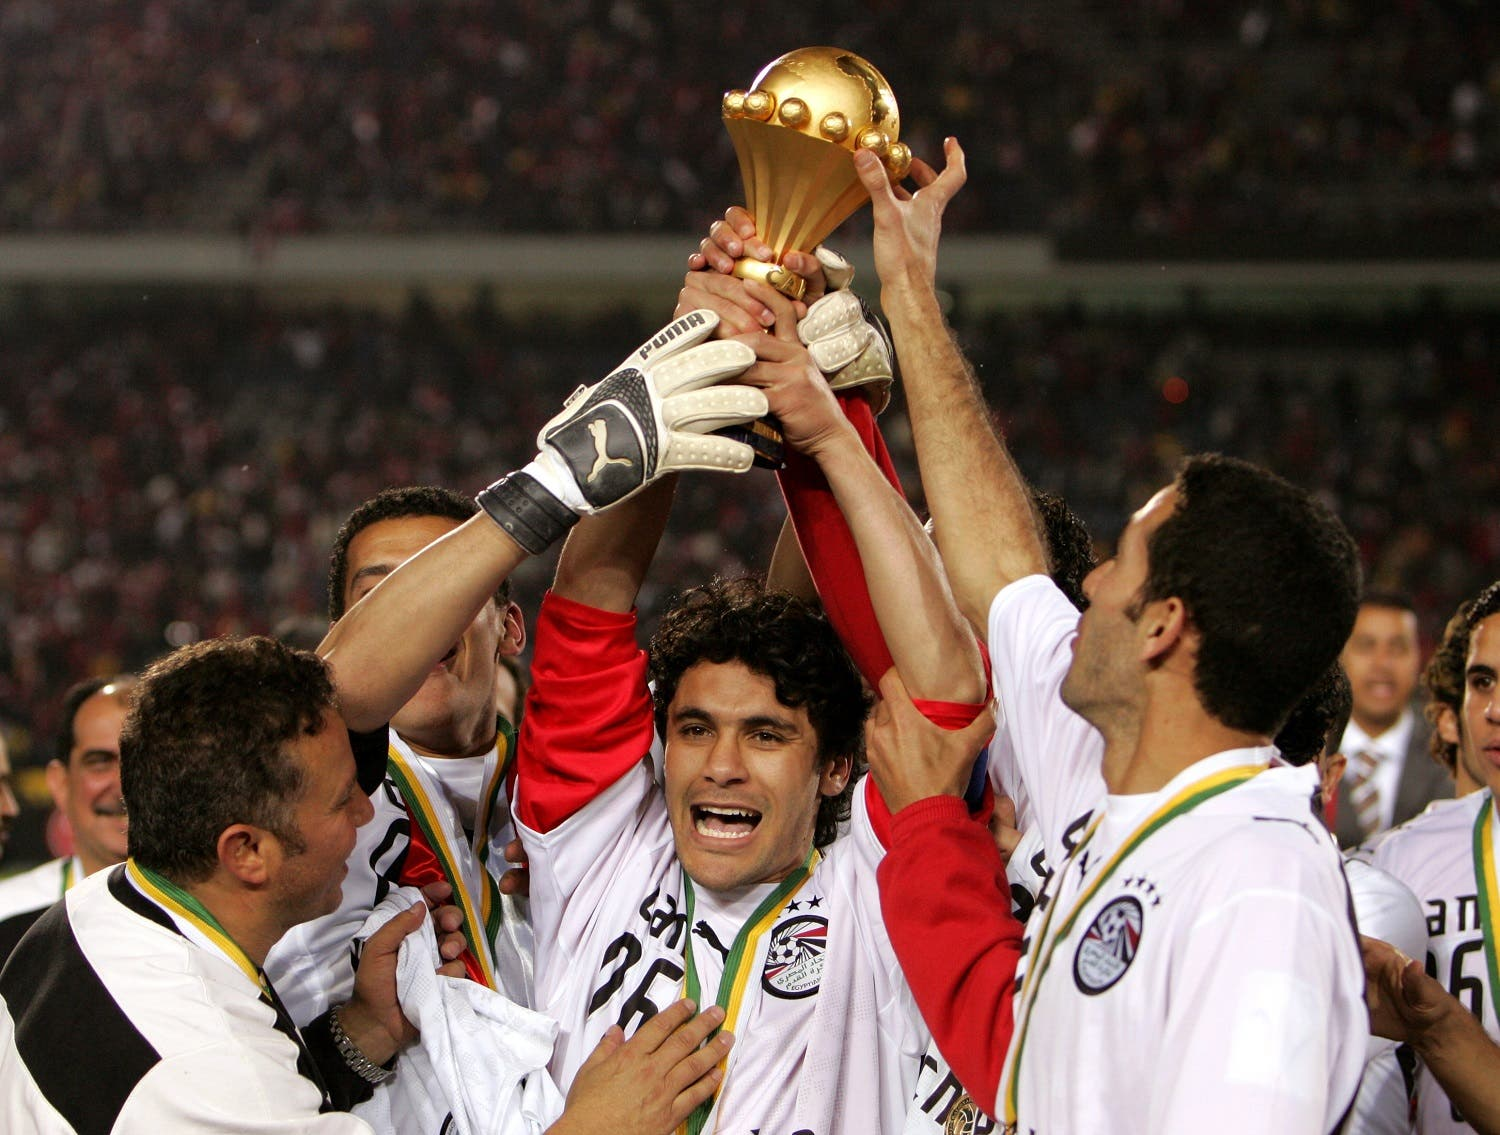 Egypt African Cup 2006 (Reuters)